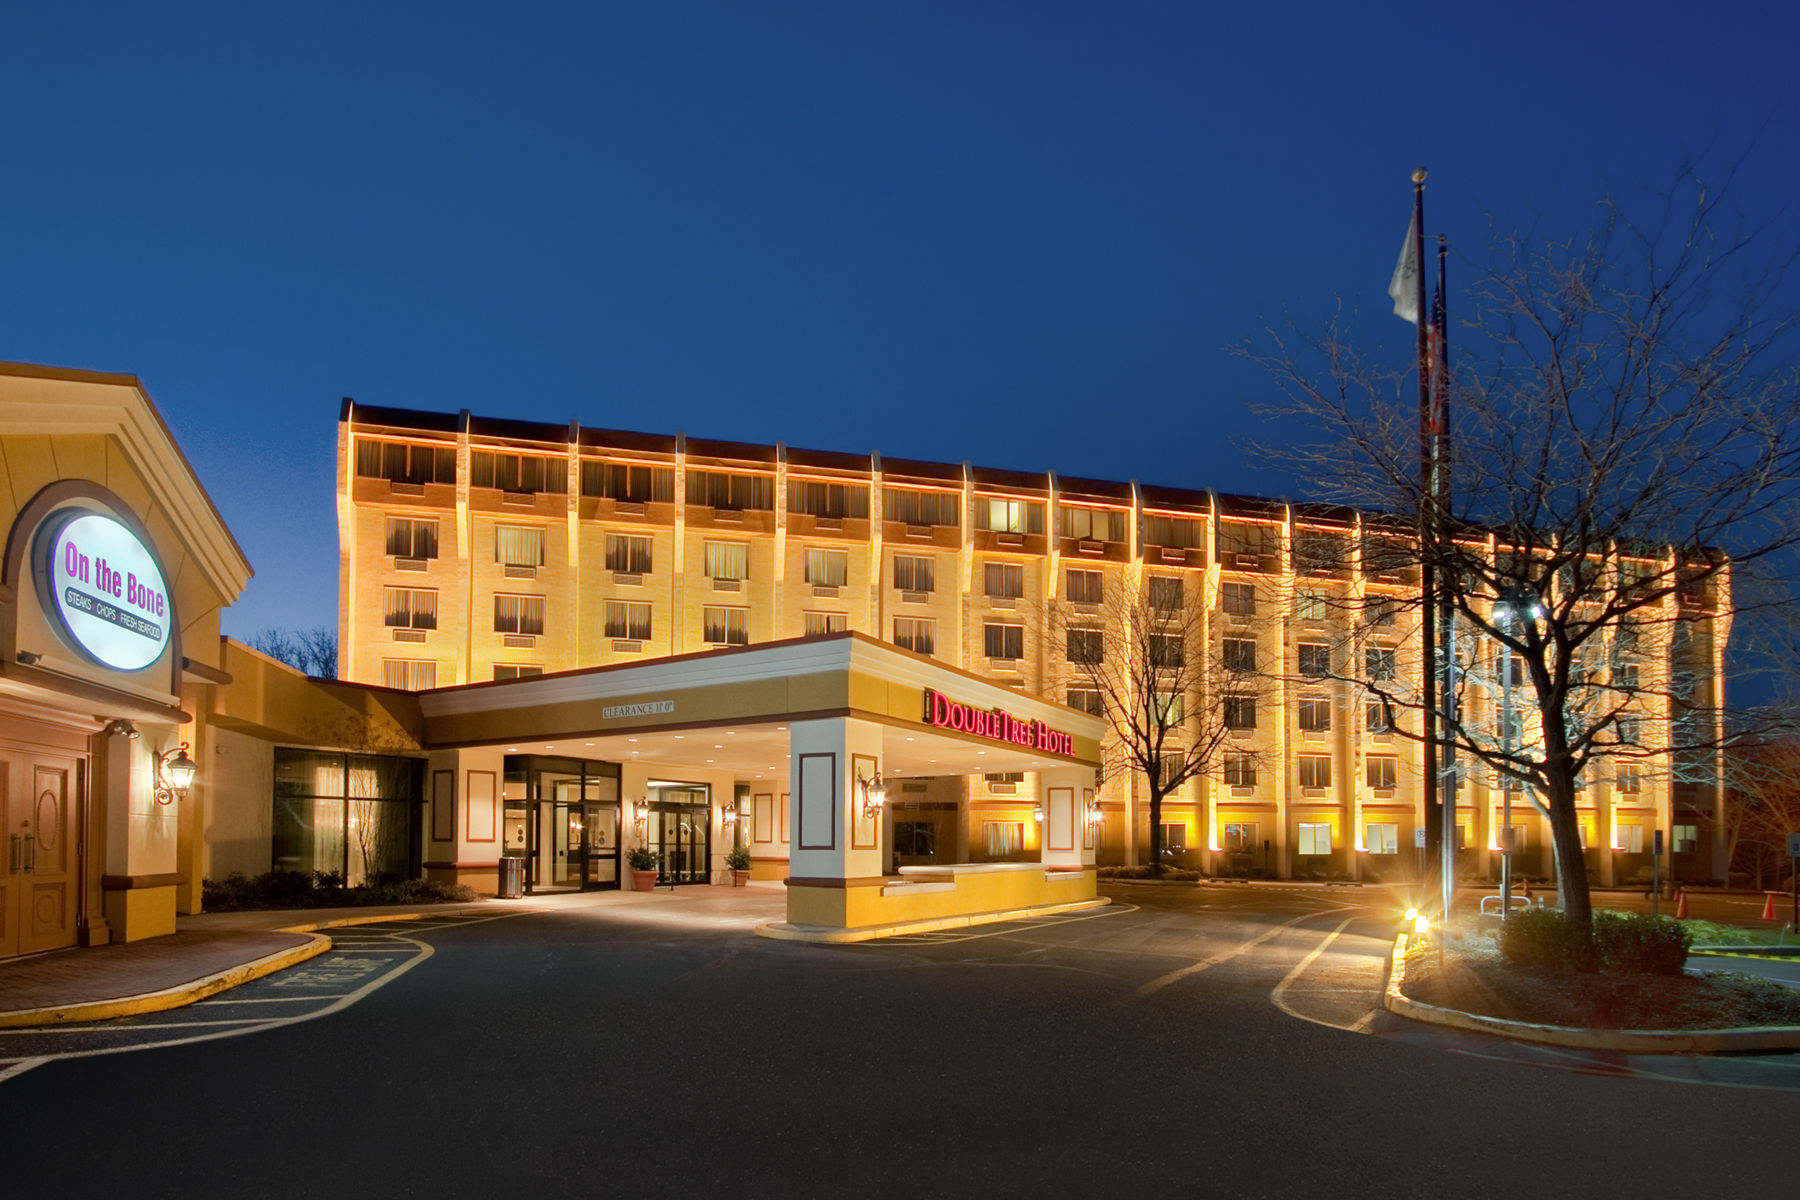 HOTEL DOUBLETREE BY HILTON PRINCETON, NJ 3* (United States) - from